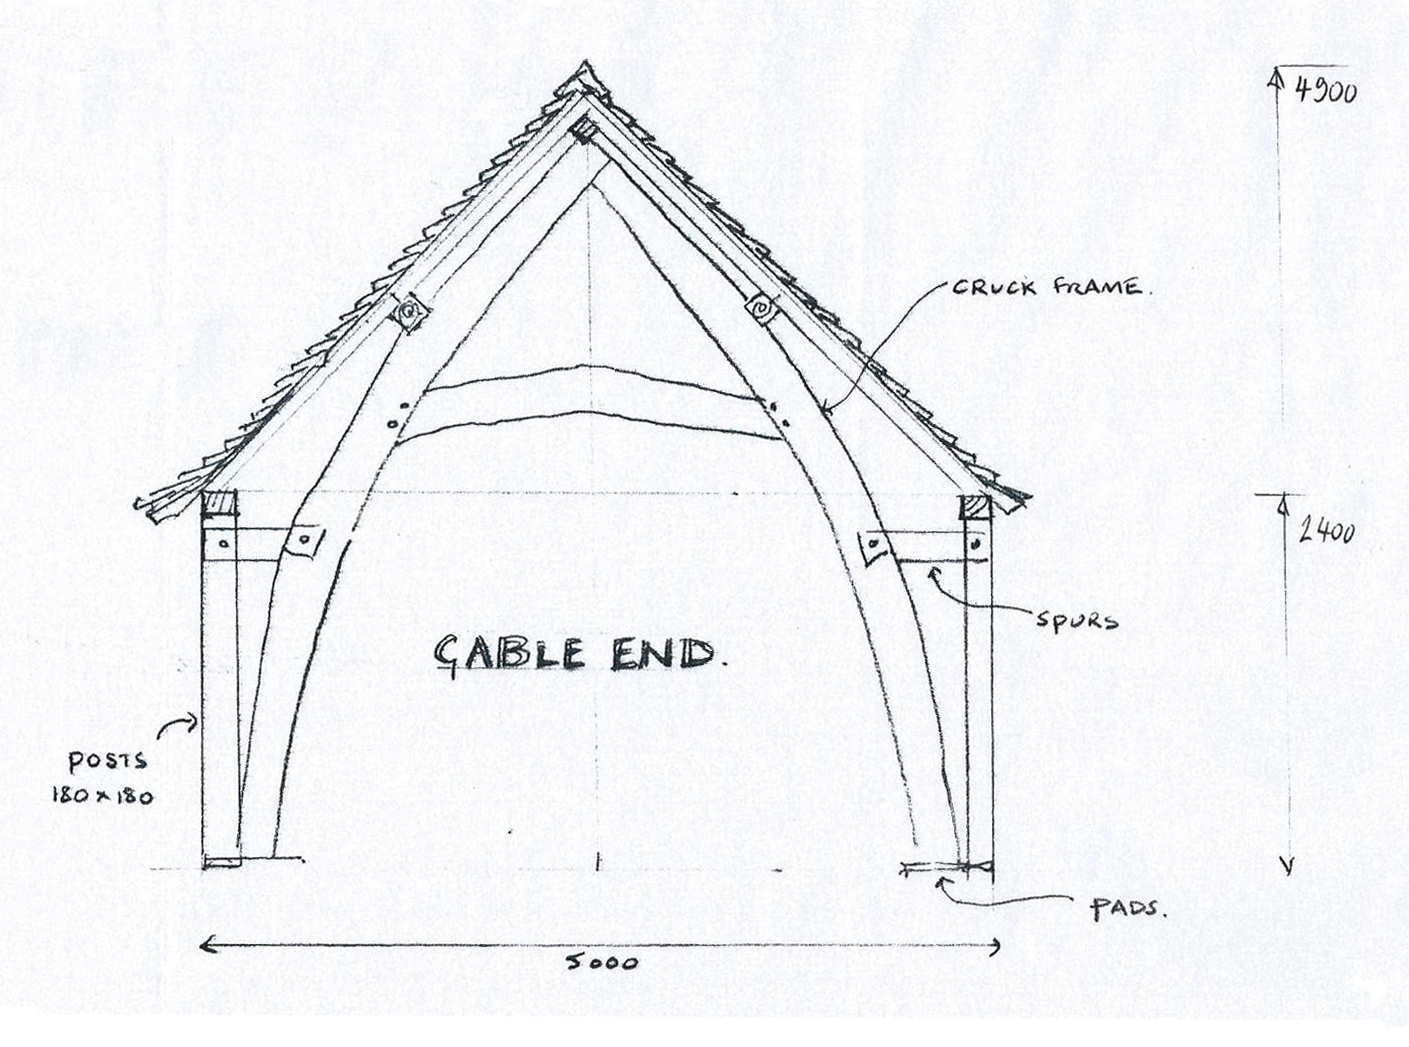 Harcourt timber frame - gable end